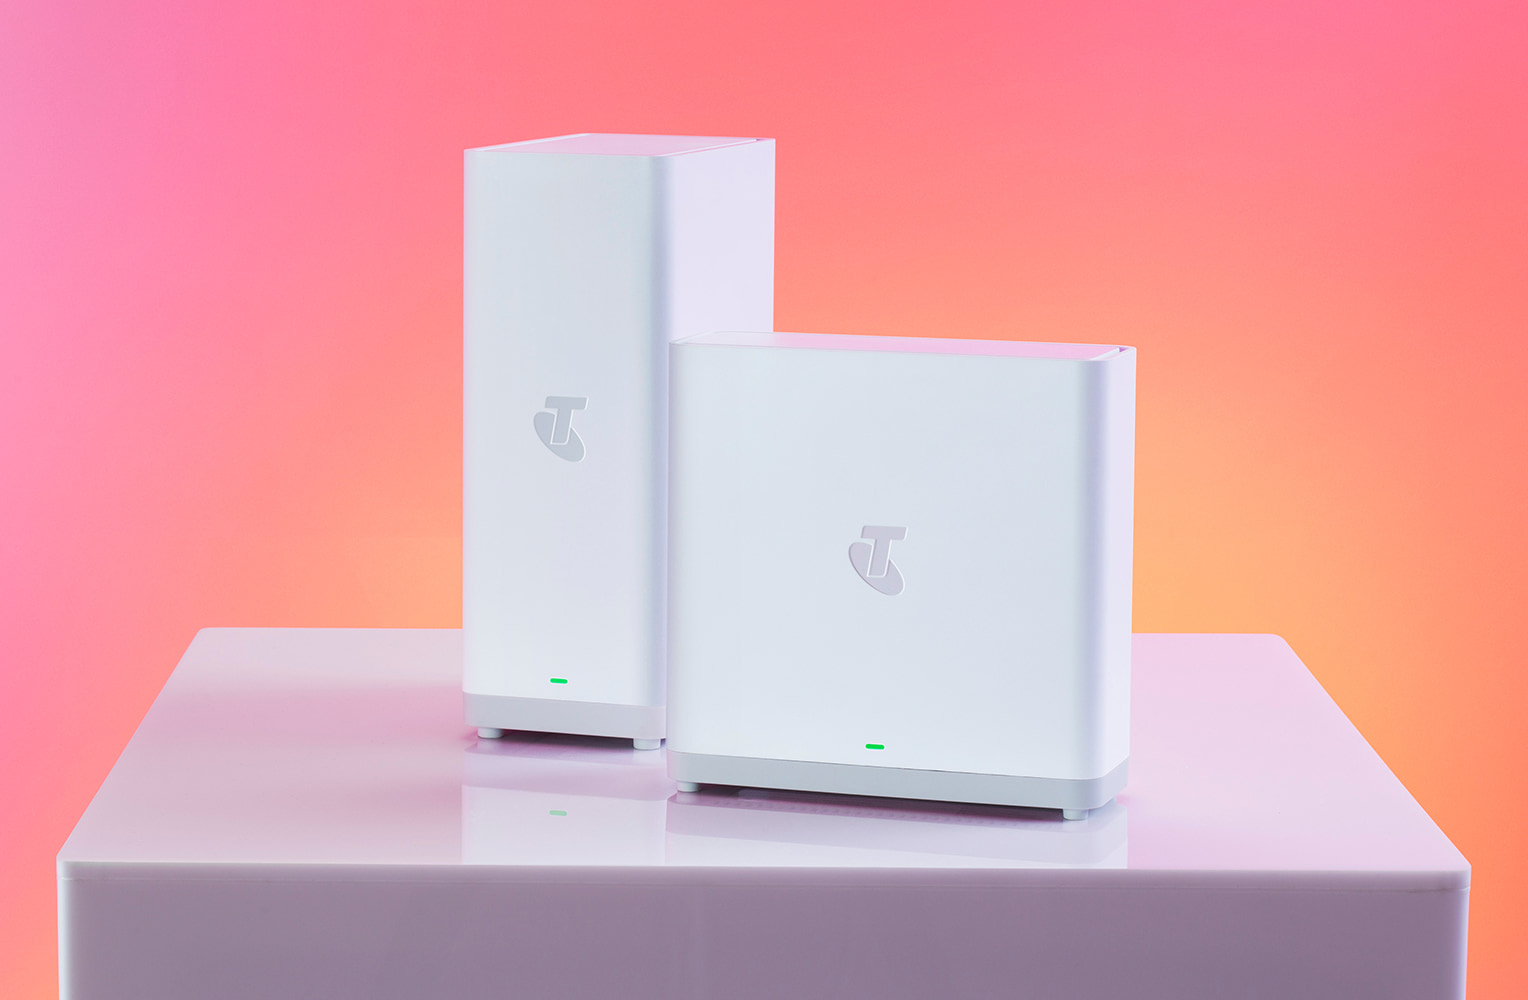 Telstra Smart Wi-Fi booster device will help improve your coverage in the home